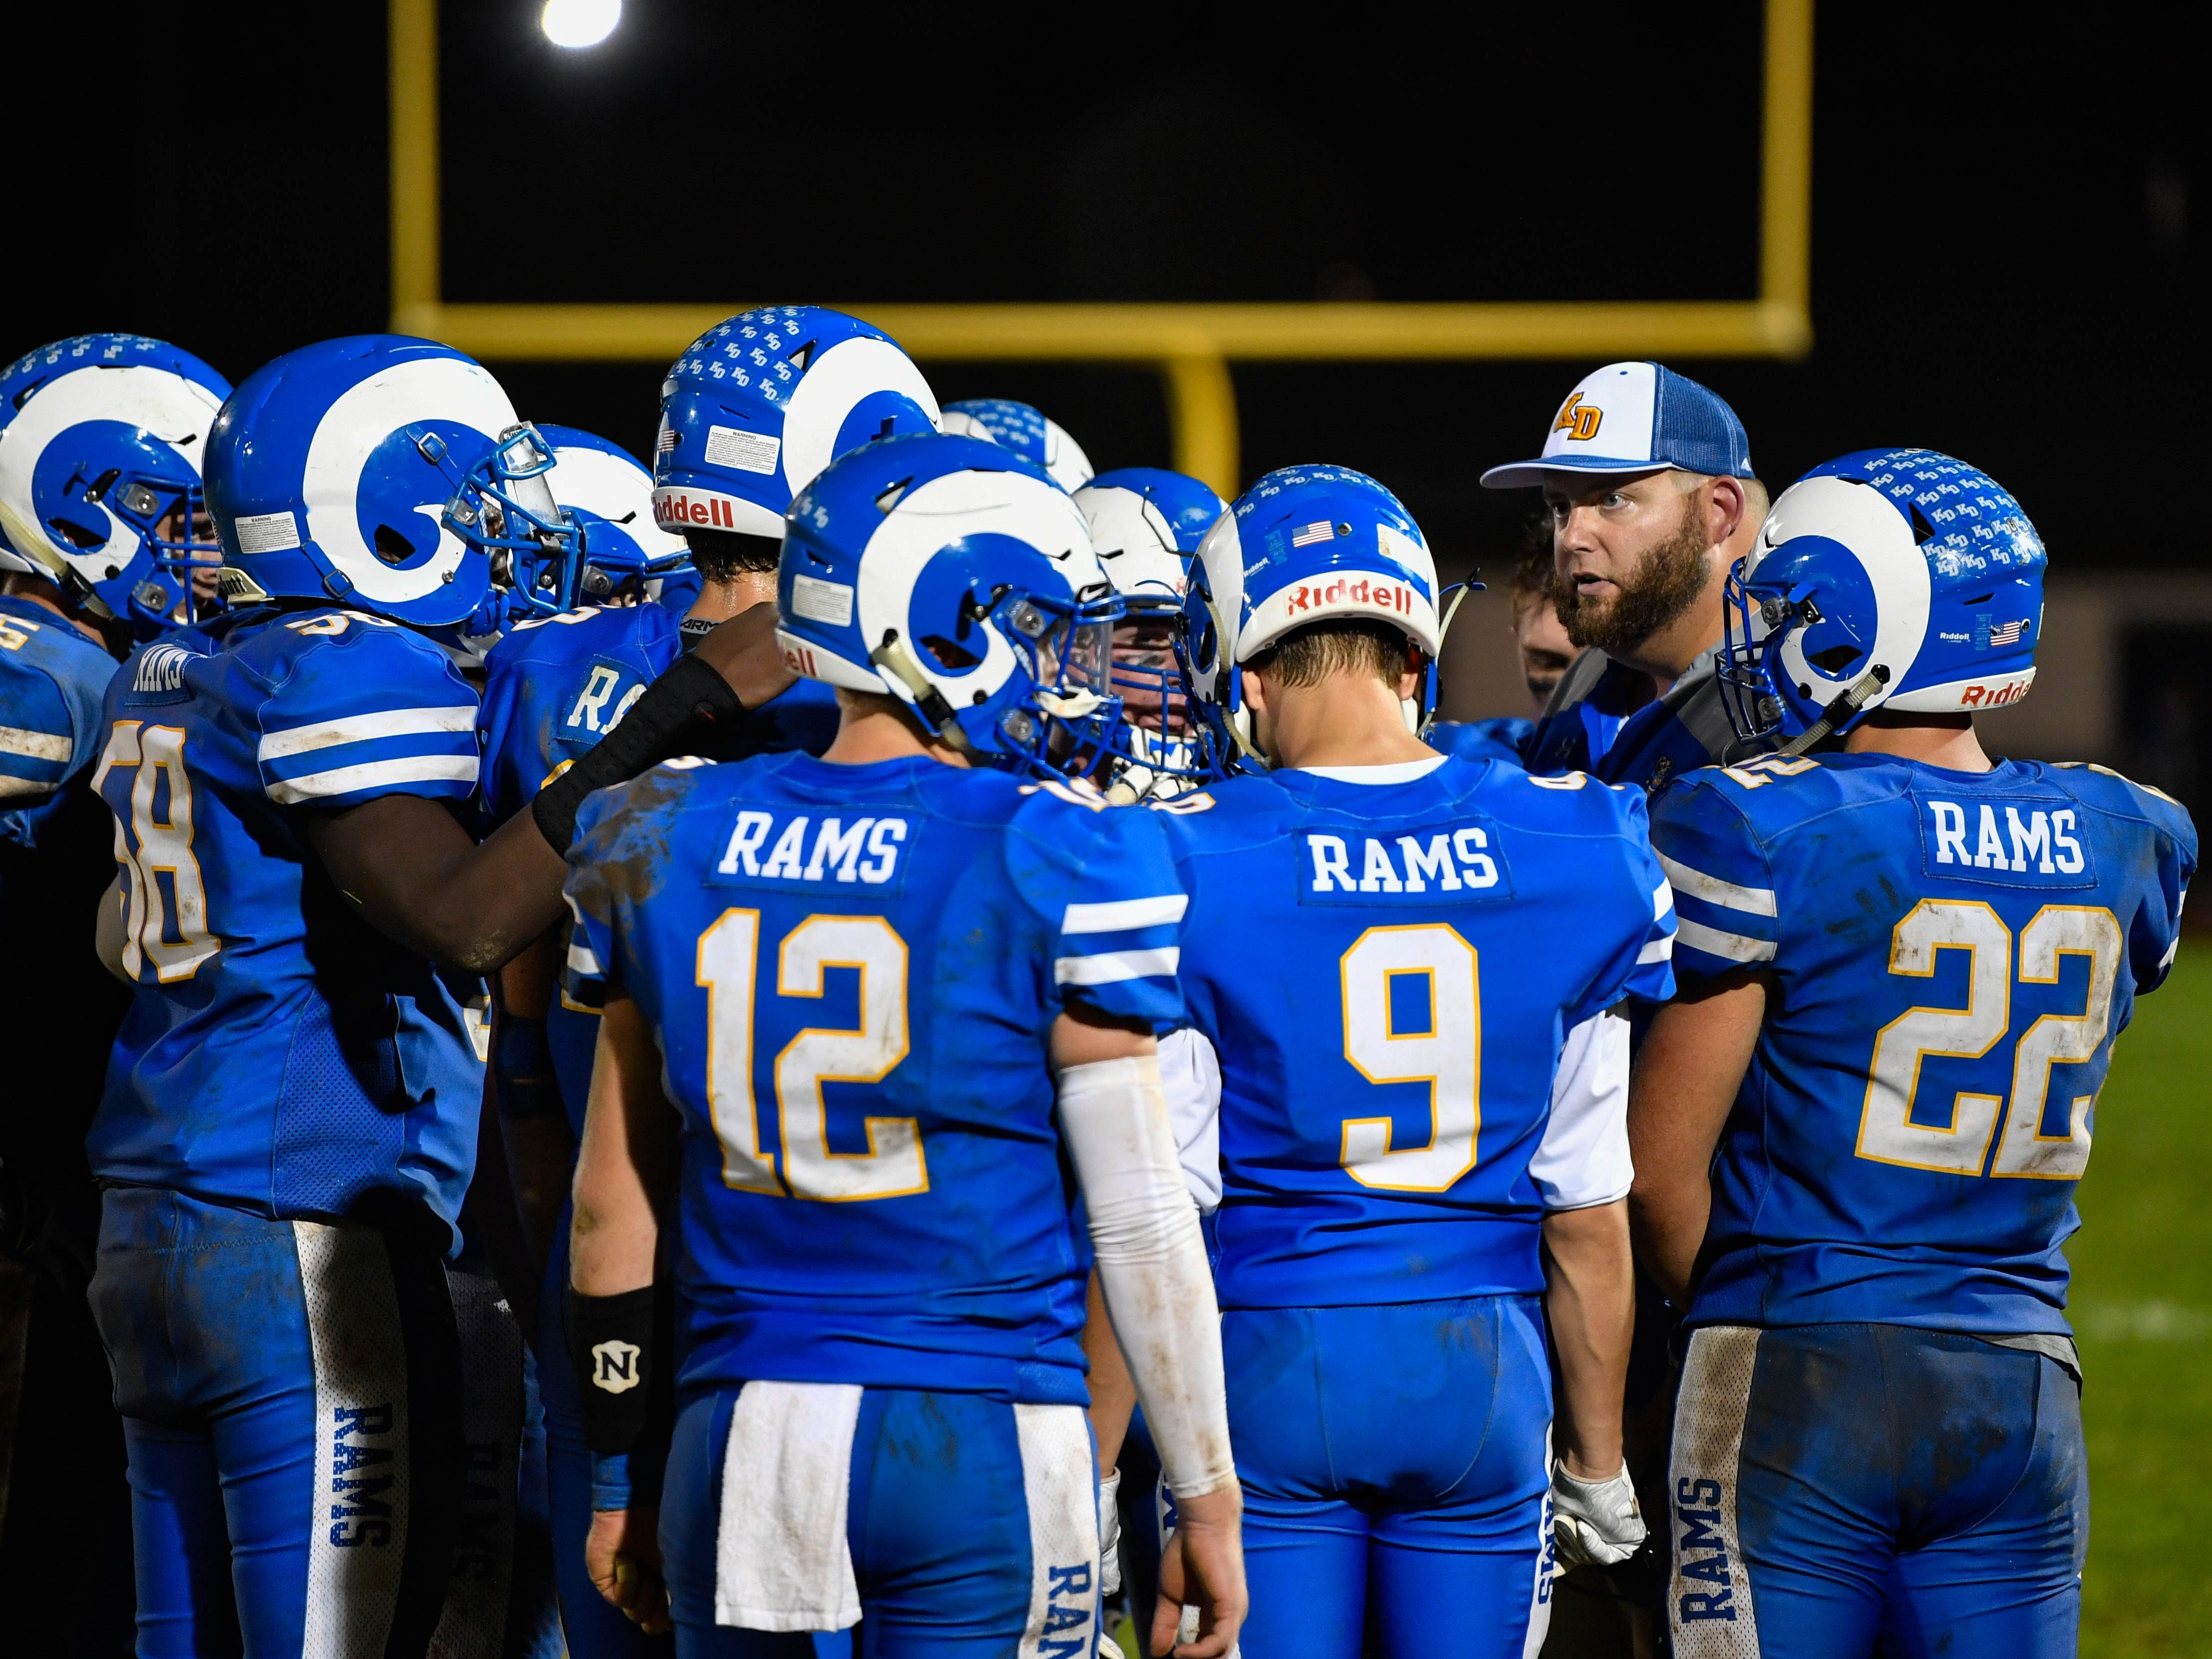 Kennard-Dale huddles up to figure out their next play  Friday, September 21, 2018. The York Suburban Trojans beat the Kennard-Dale Rams 31-25.